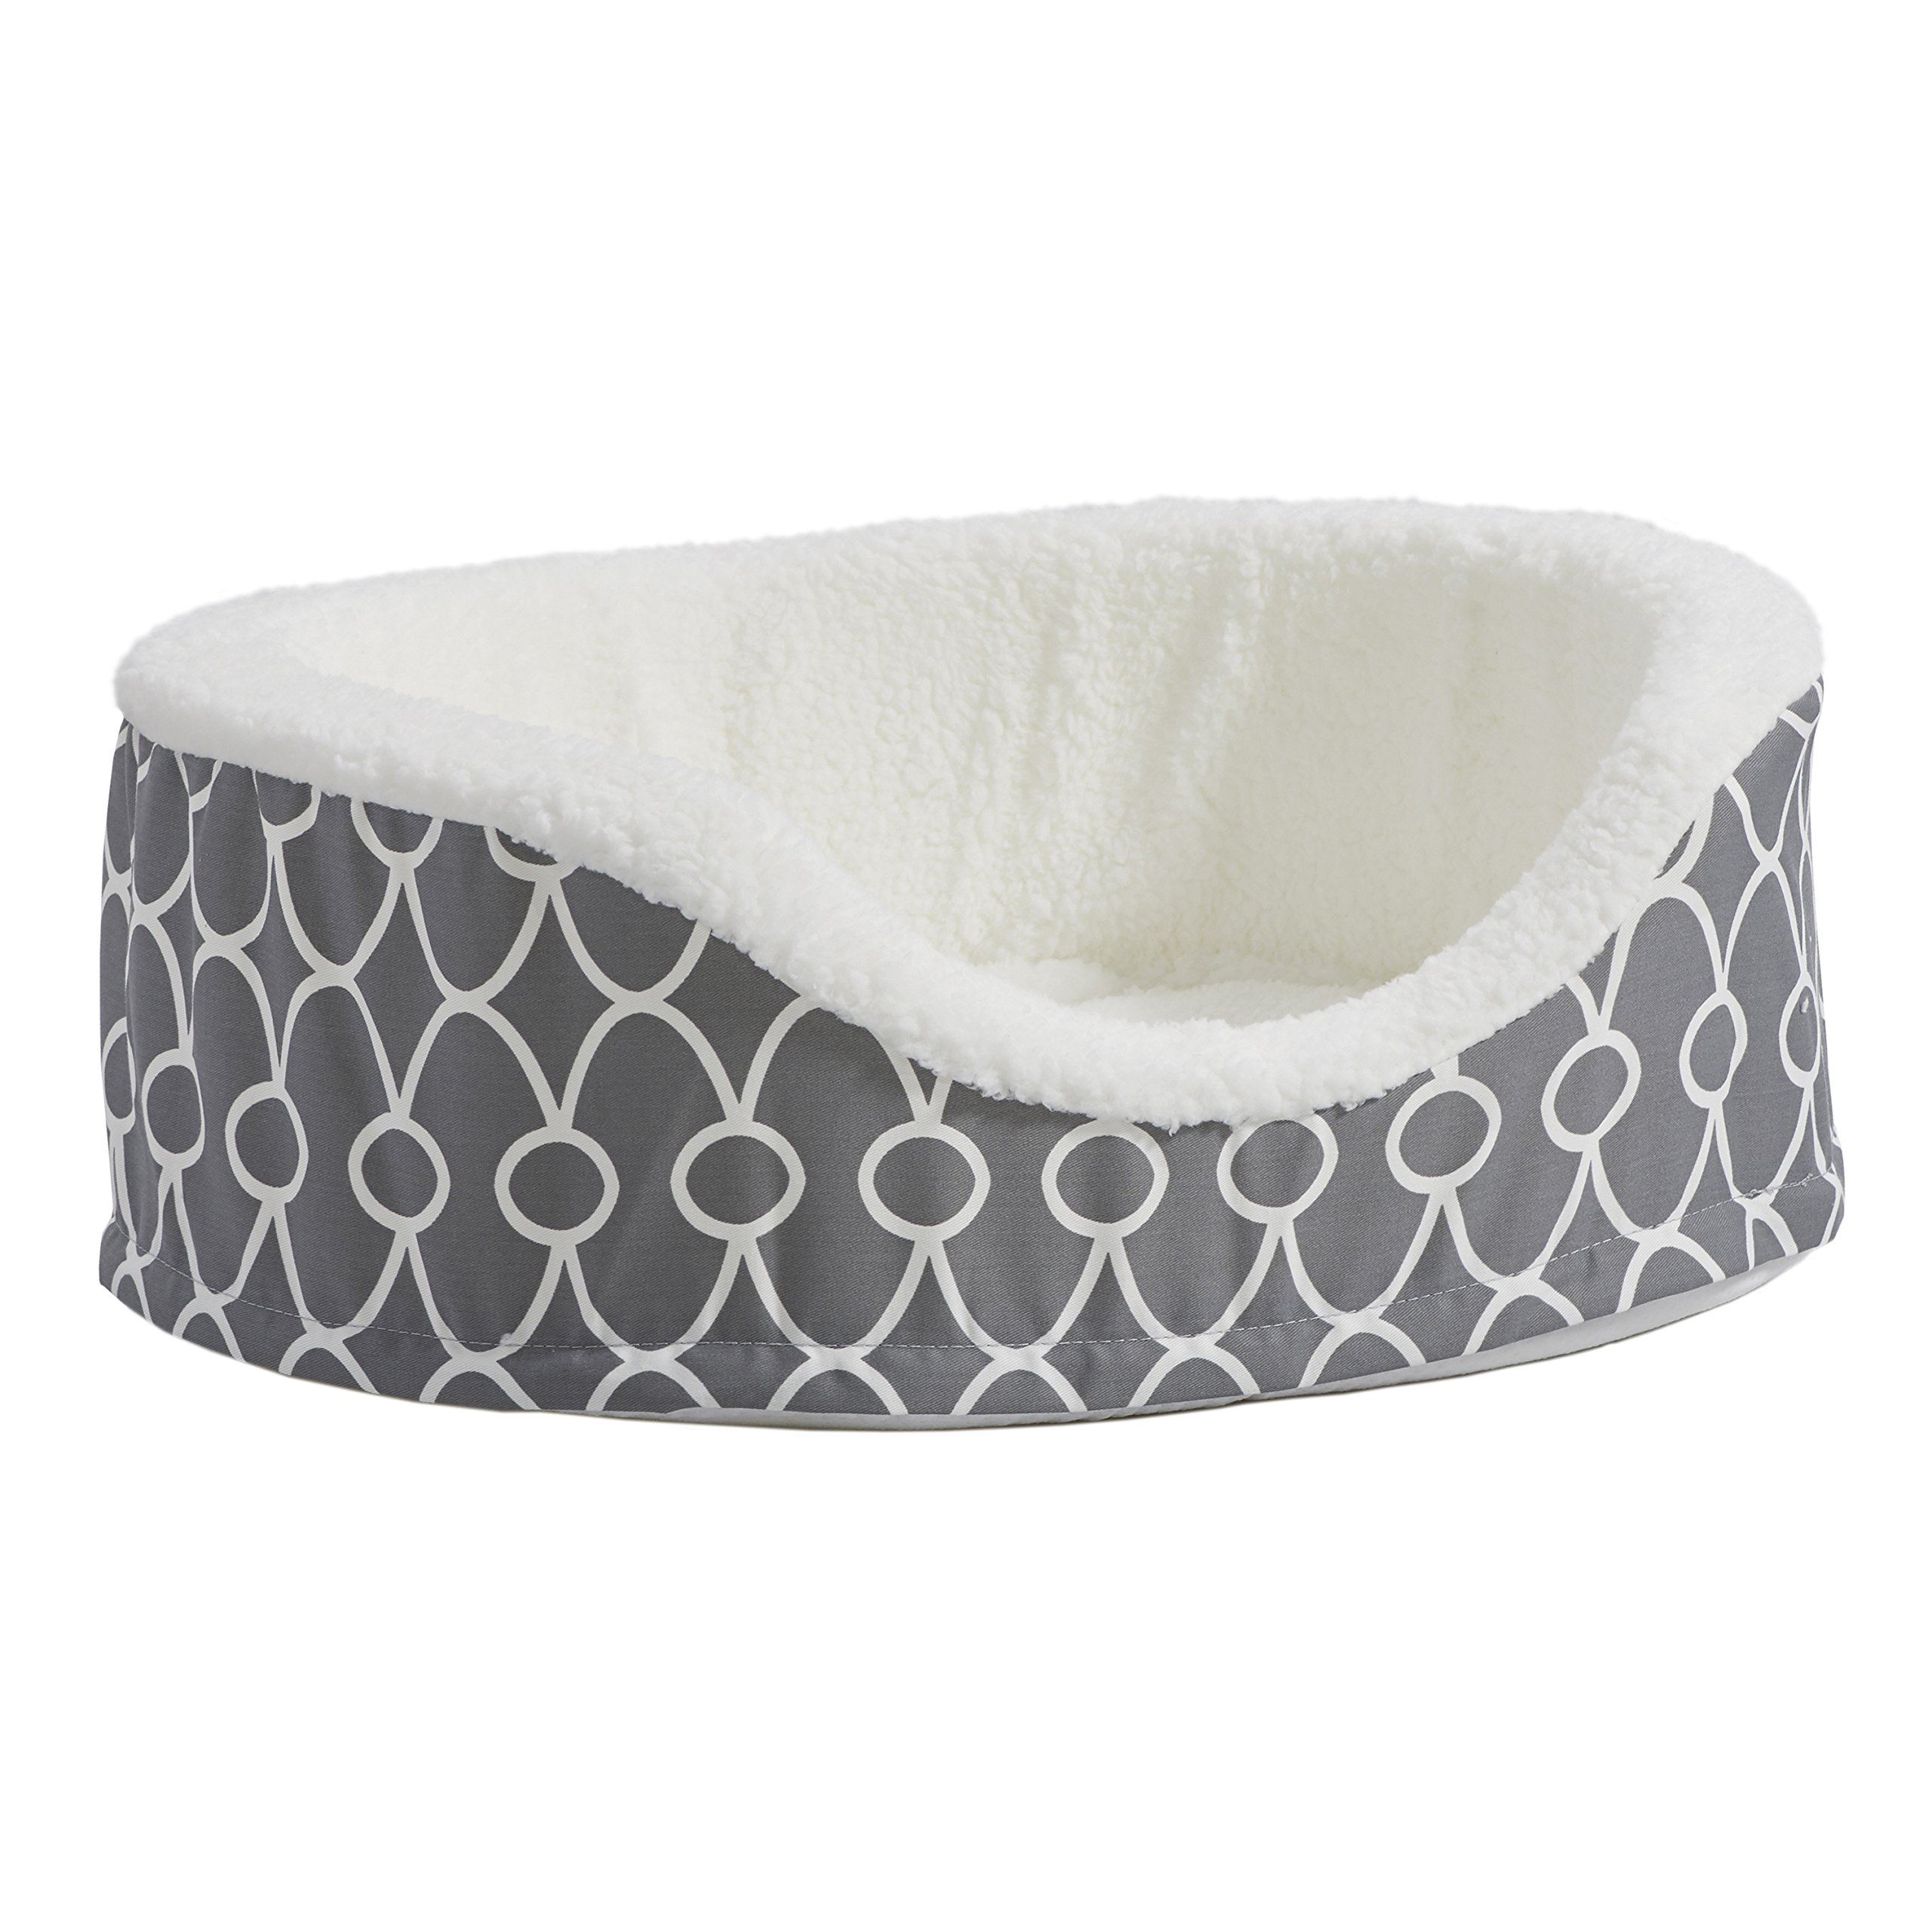 MidWest Homes for Pets Orthoperdic Egg-Crate Nesting Pet Bed w/Teflon Fabric Protector, Small Gray